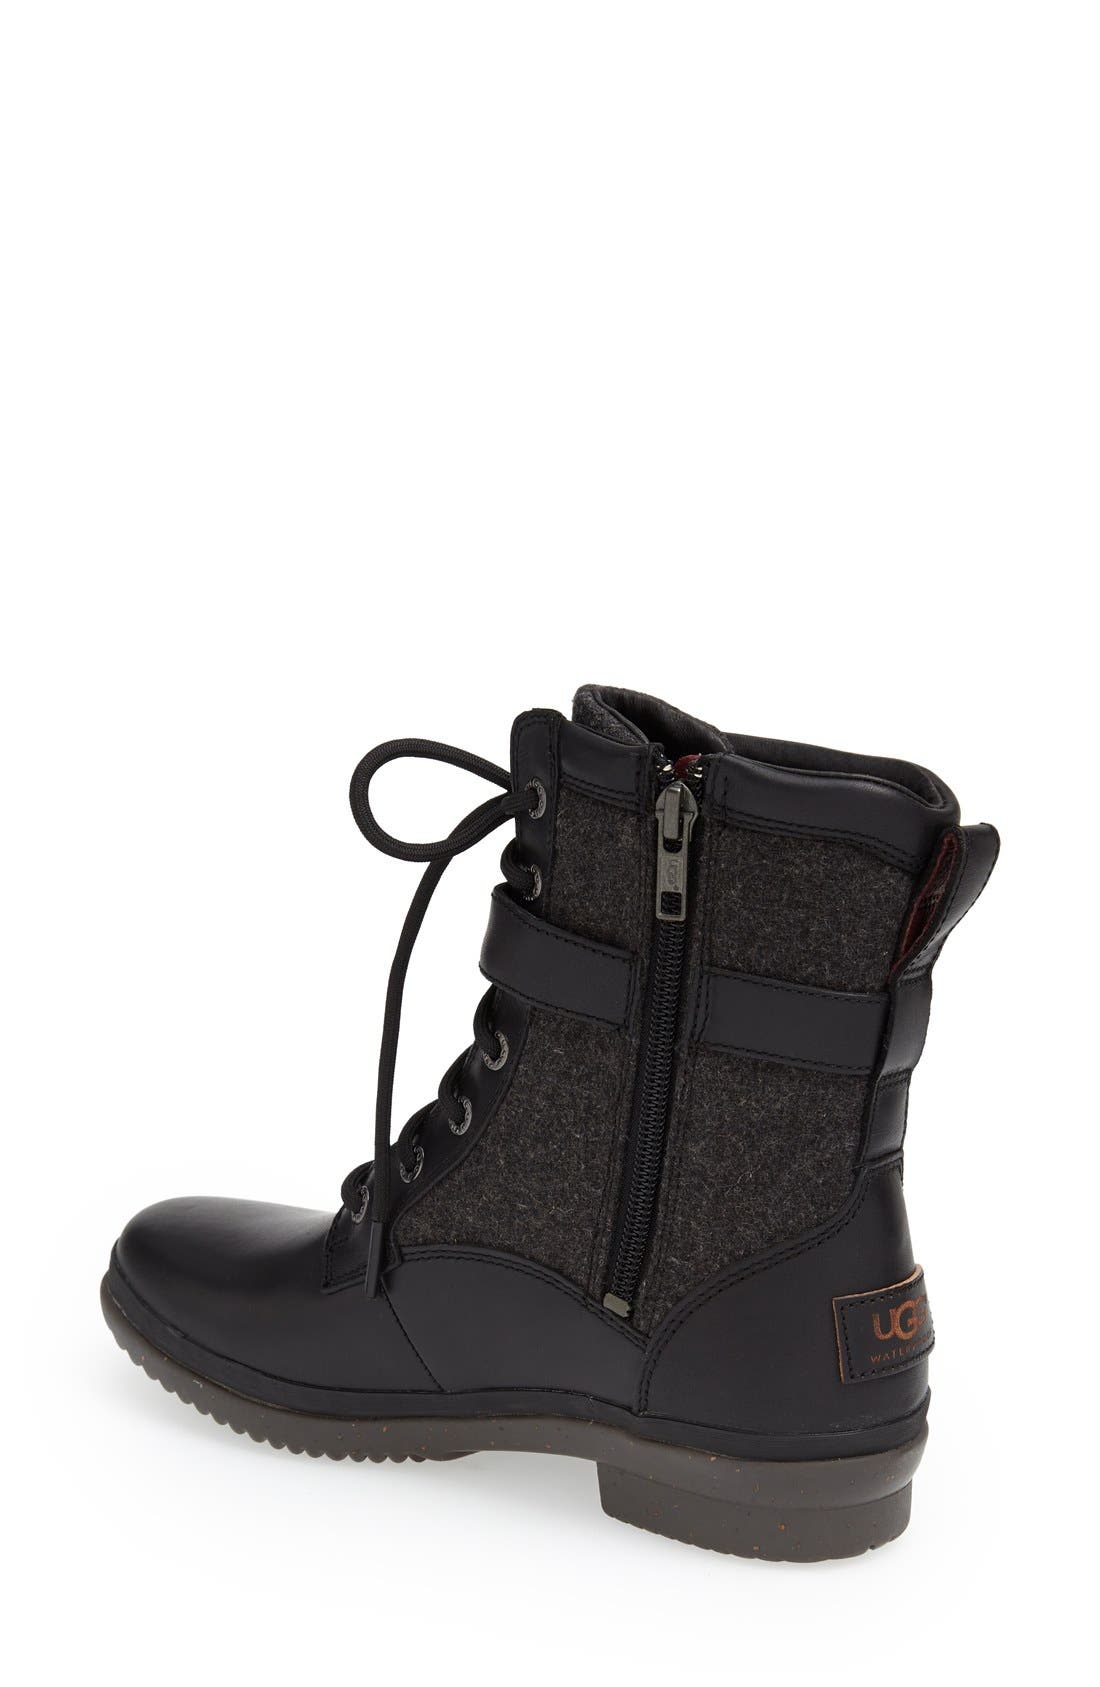 Alternate Image 2  - UGG® Kesey Waterproof Boot (Women)